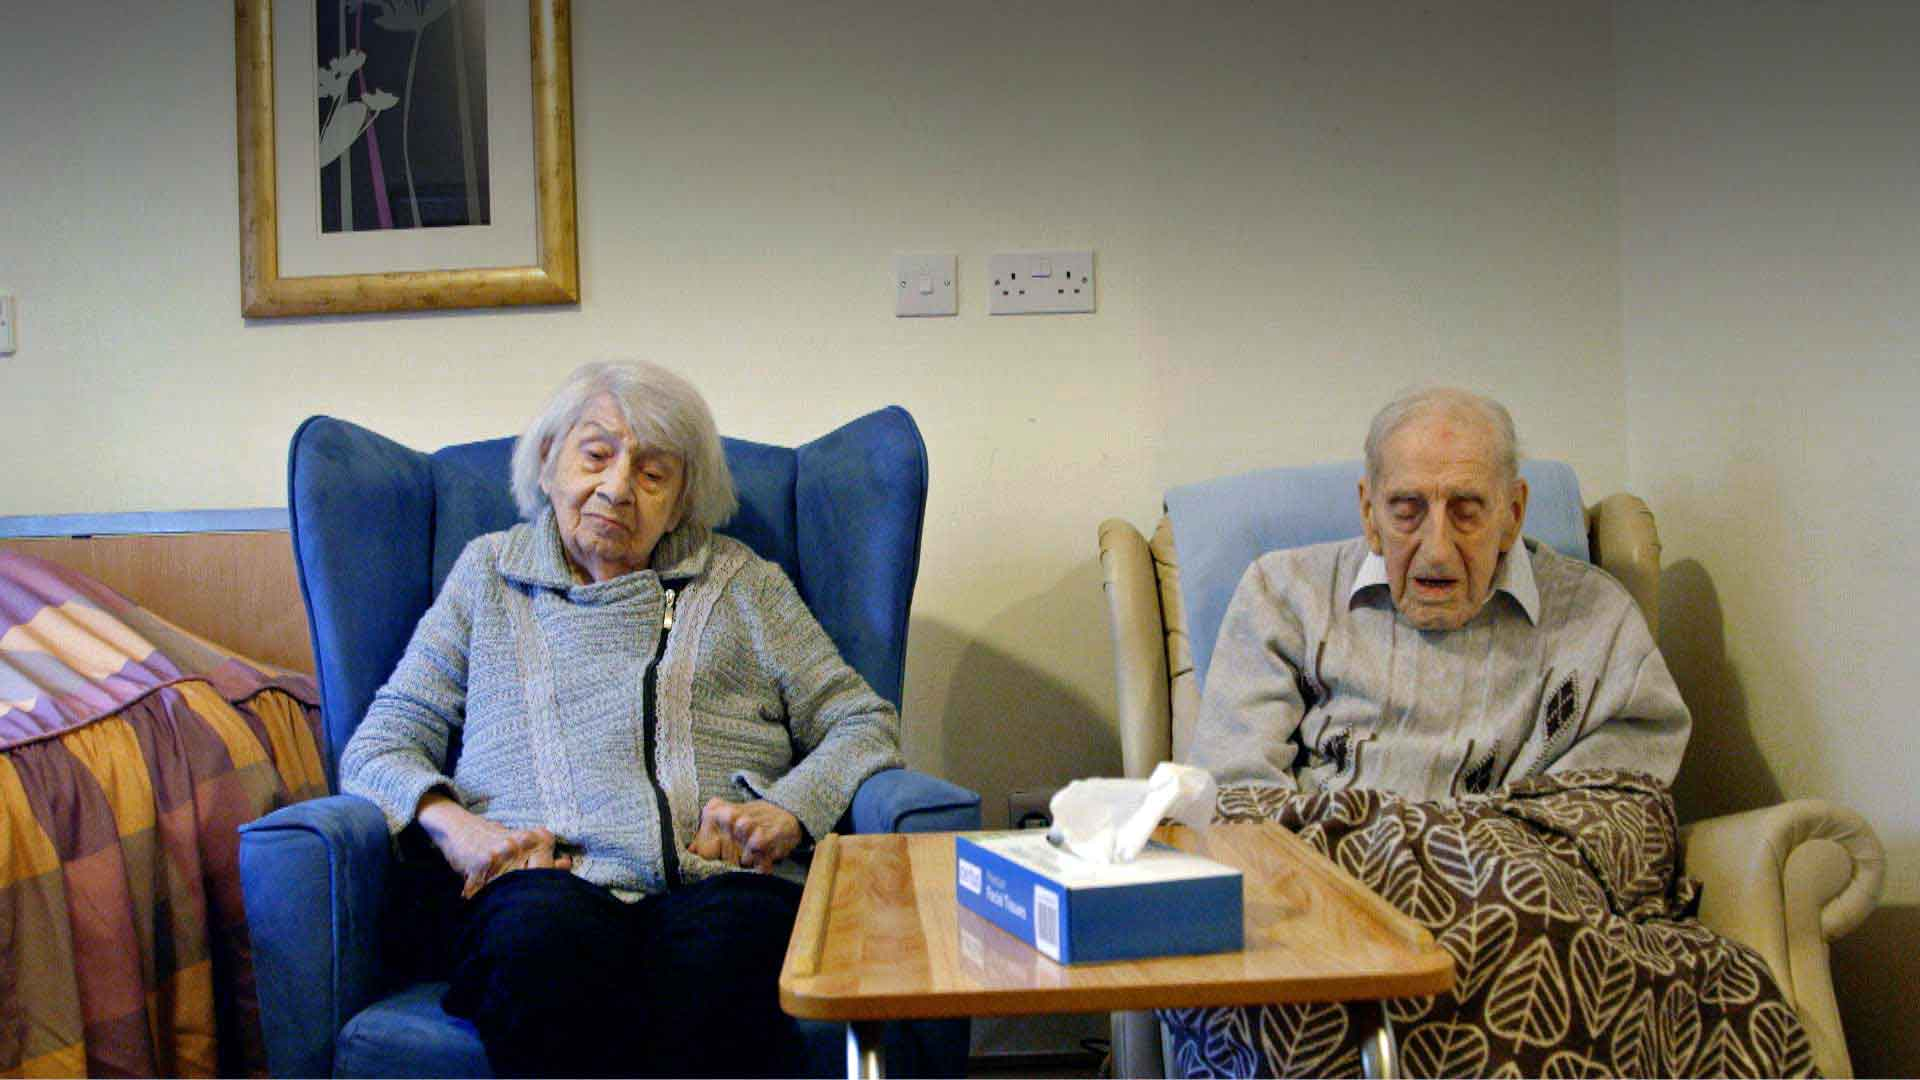 The crisis in care, who pays?